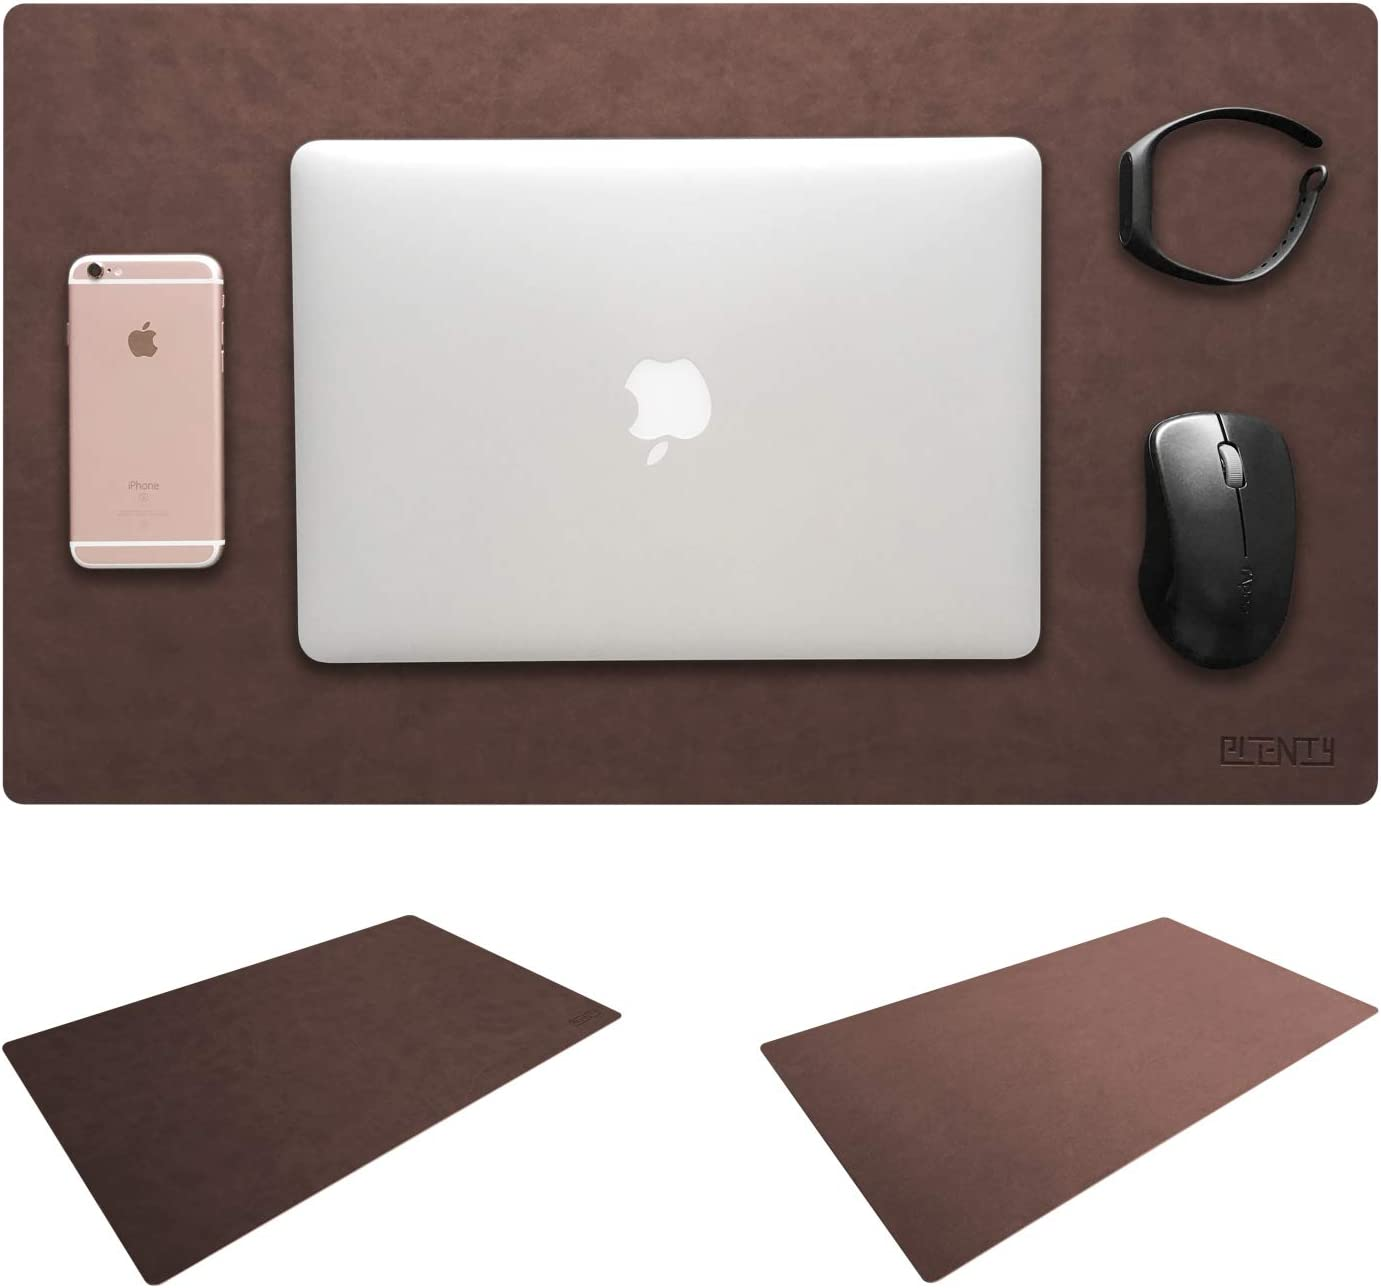 "Leather Desk Mat & Mate 24"" x 15"" Non-Slip Smooth Writing Desk Pad Protective Mat Protector Mouse Pad for Desktops and Laptops (Brown)"